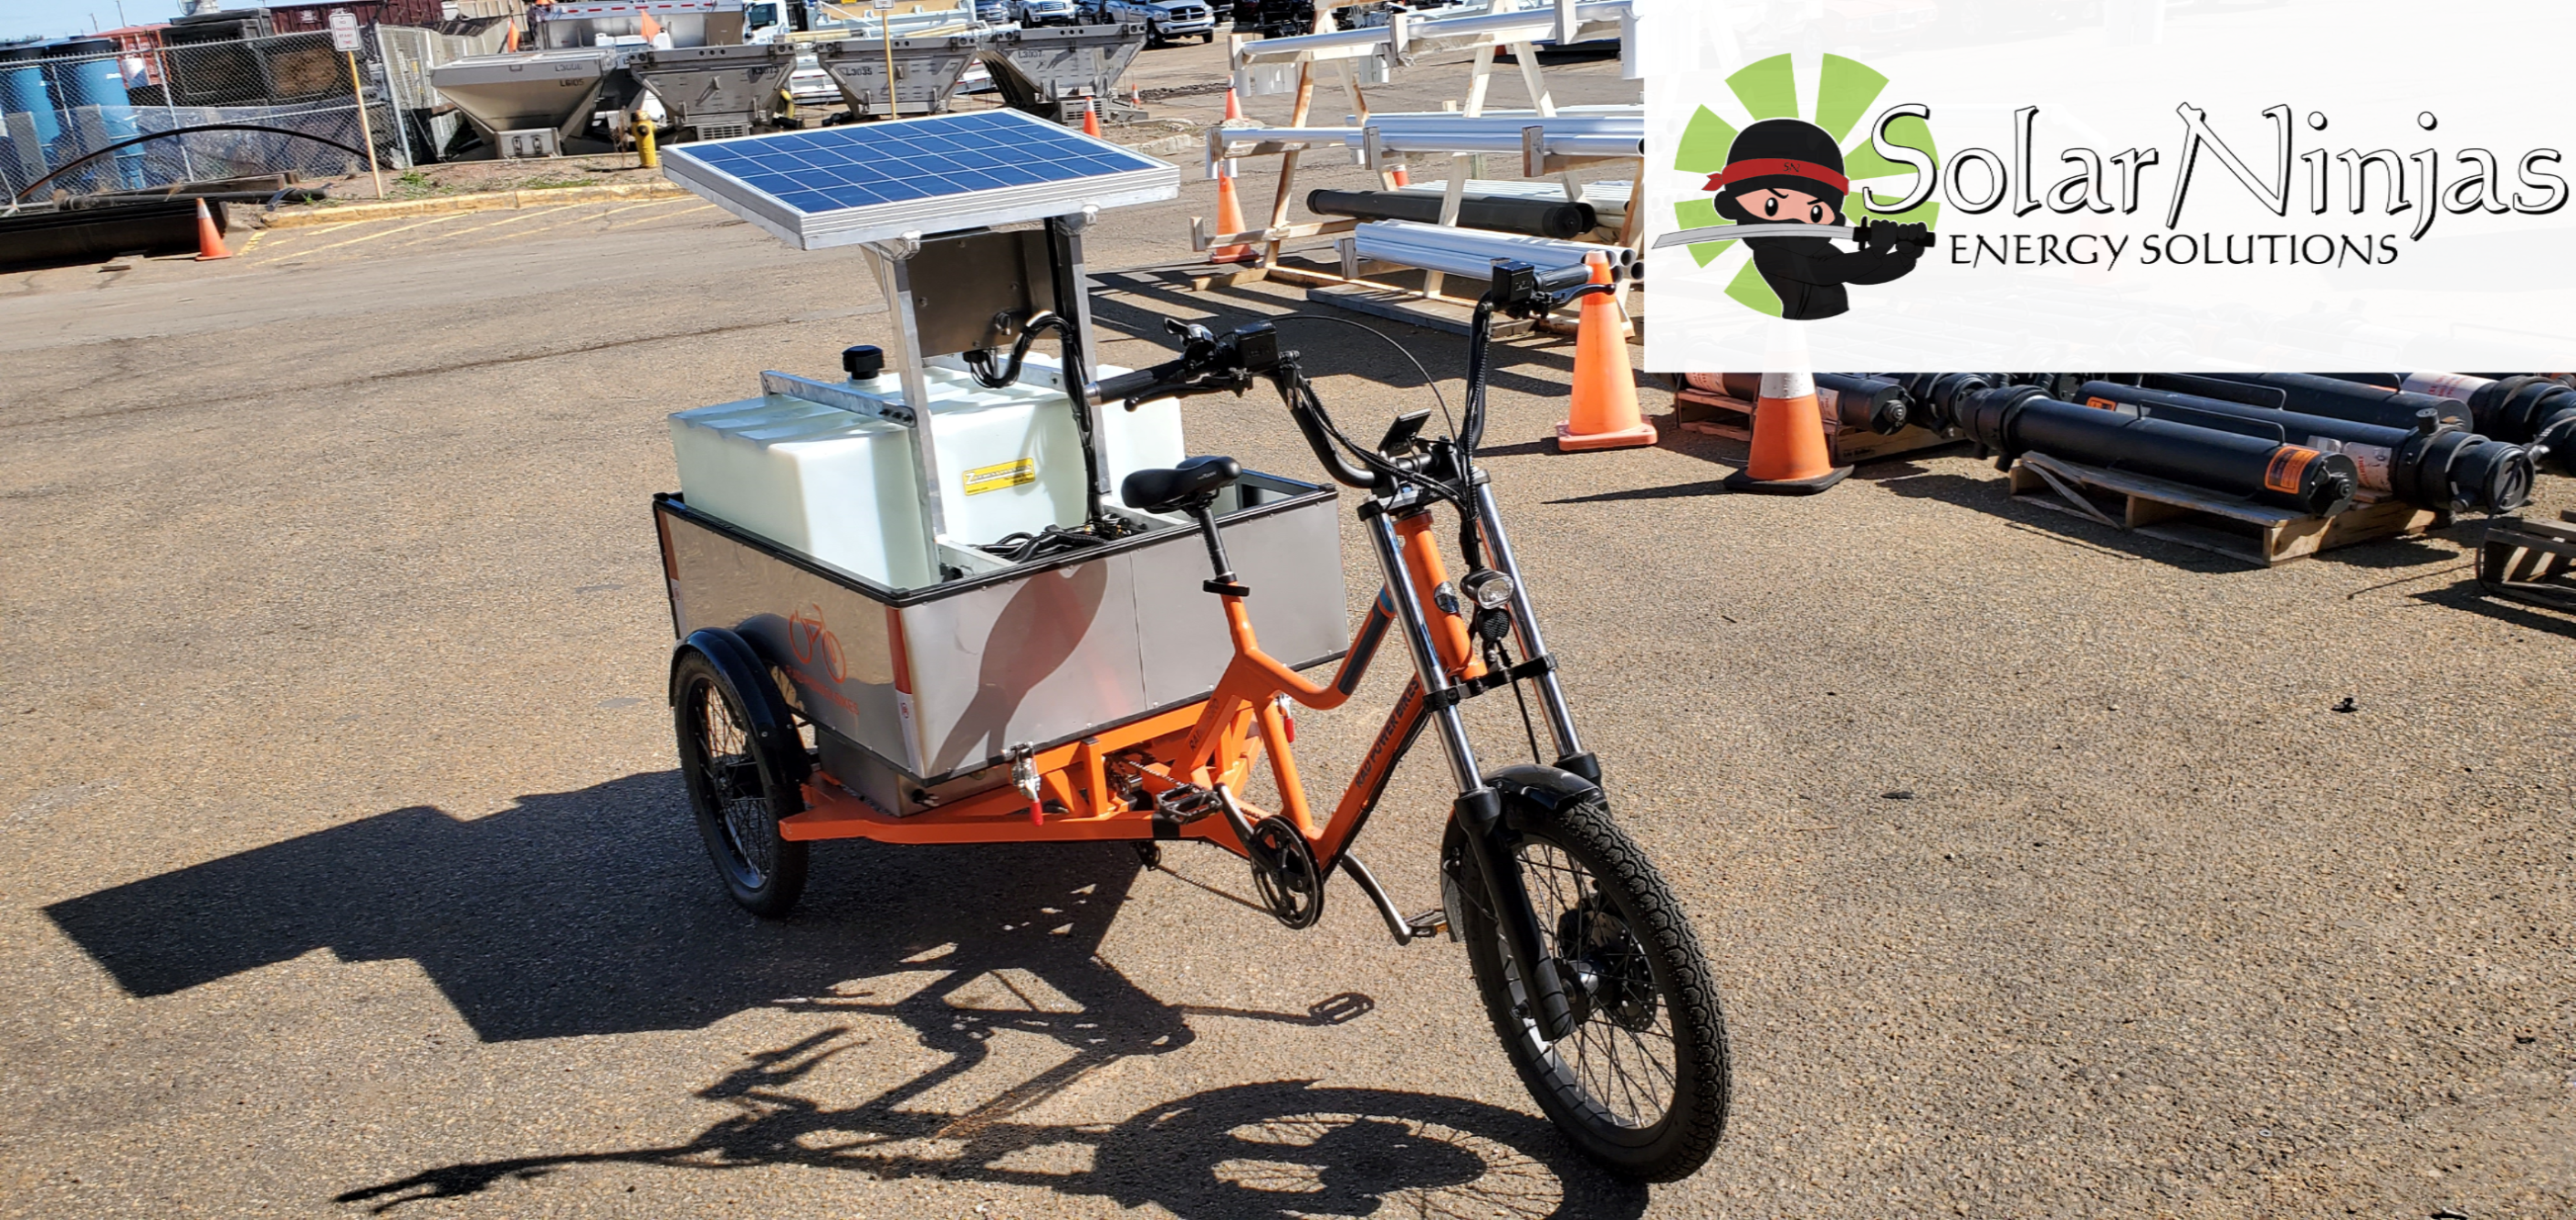 Utility E-Bikes with solar power!